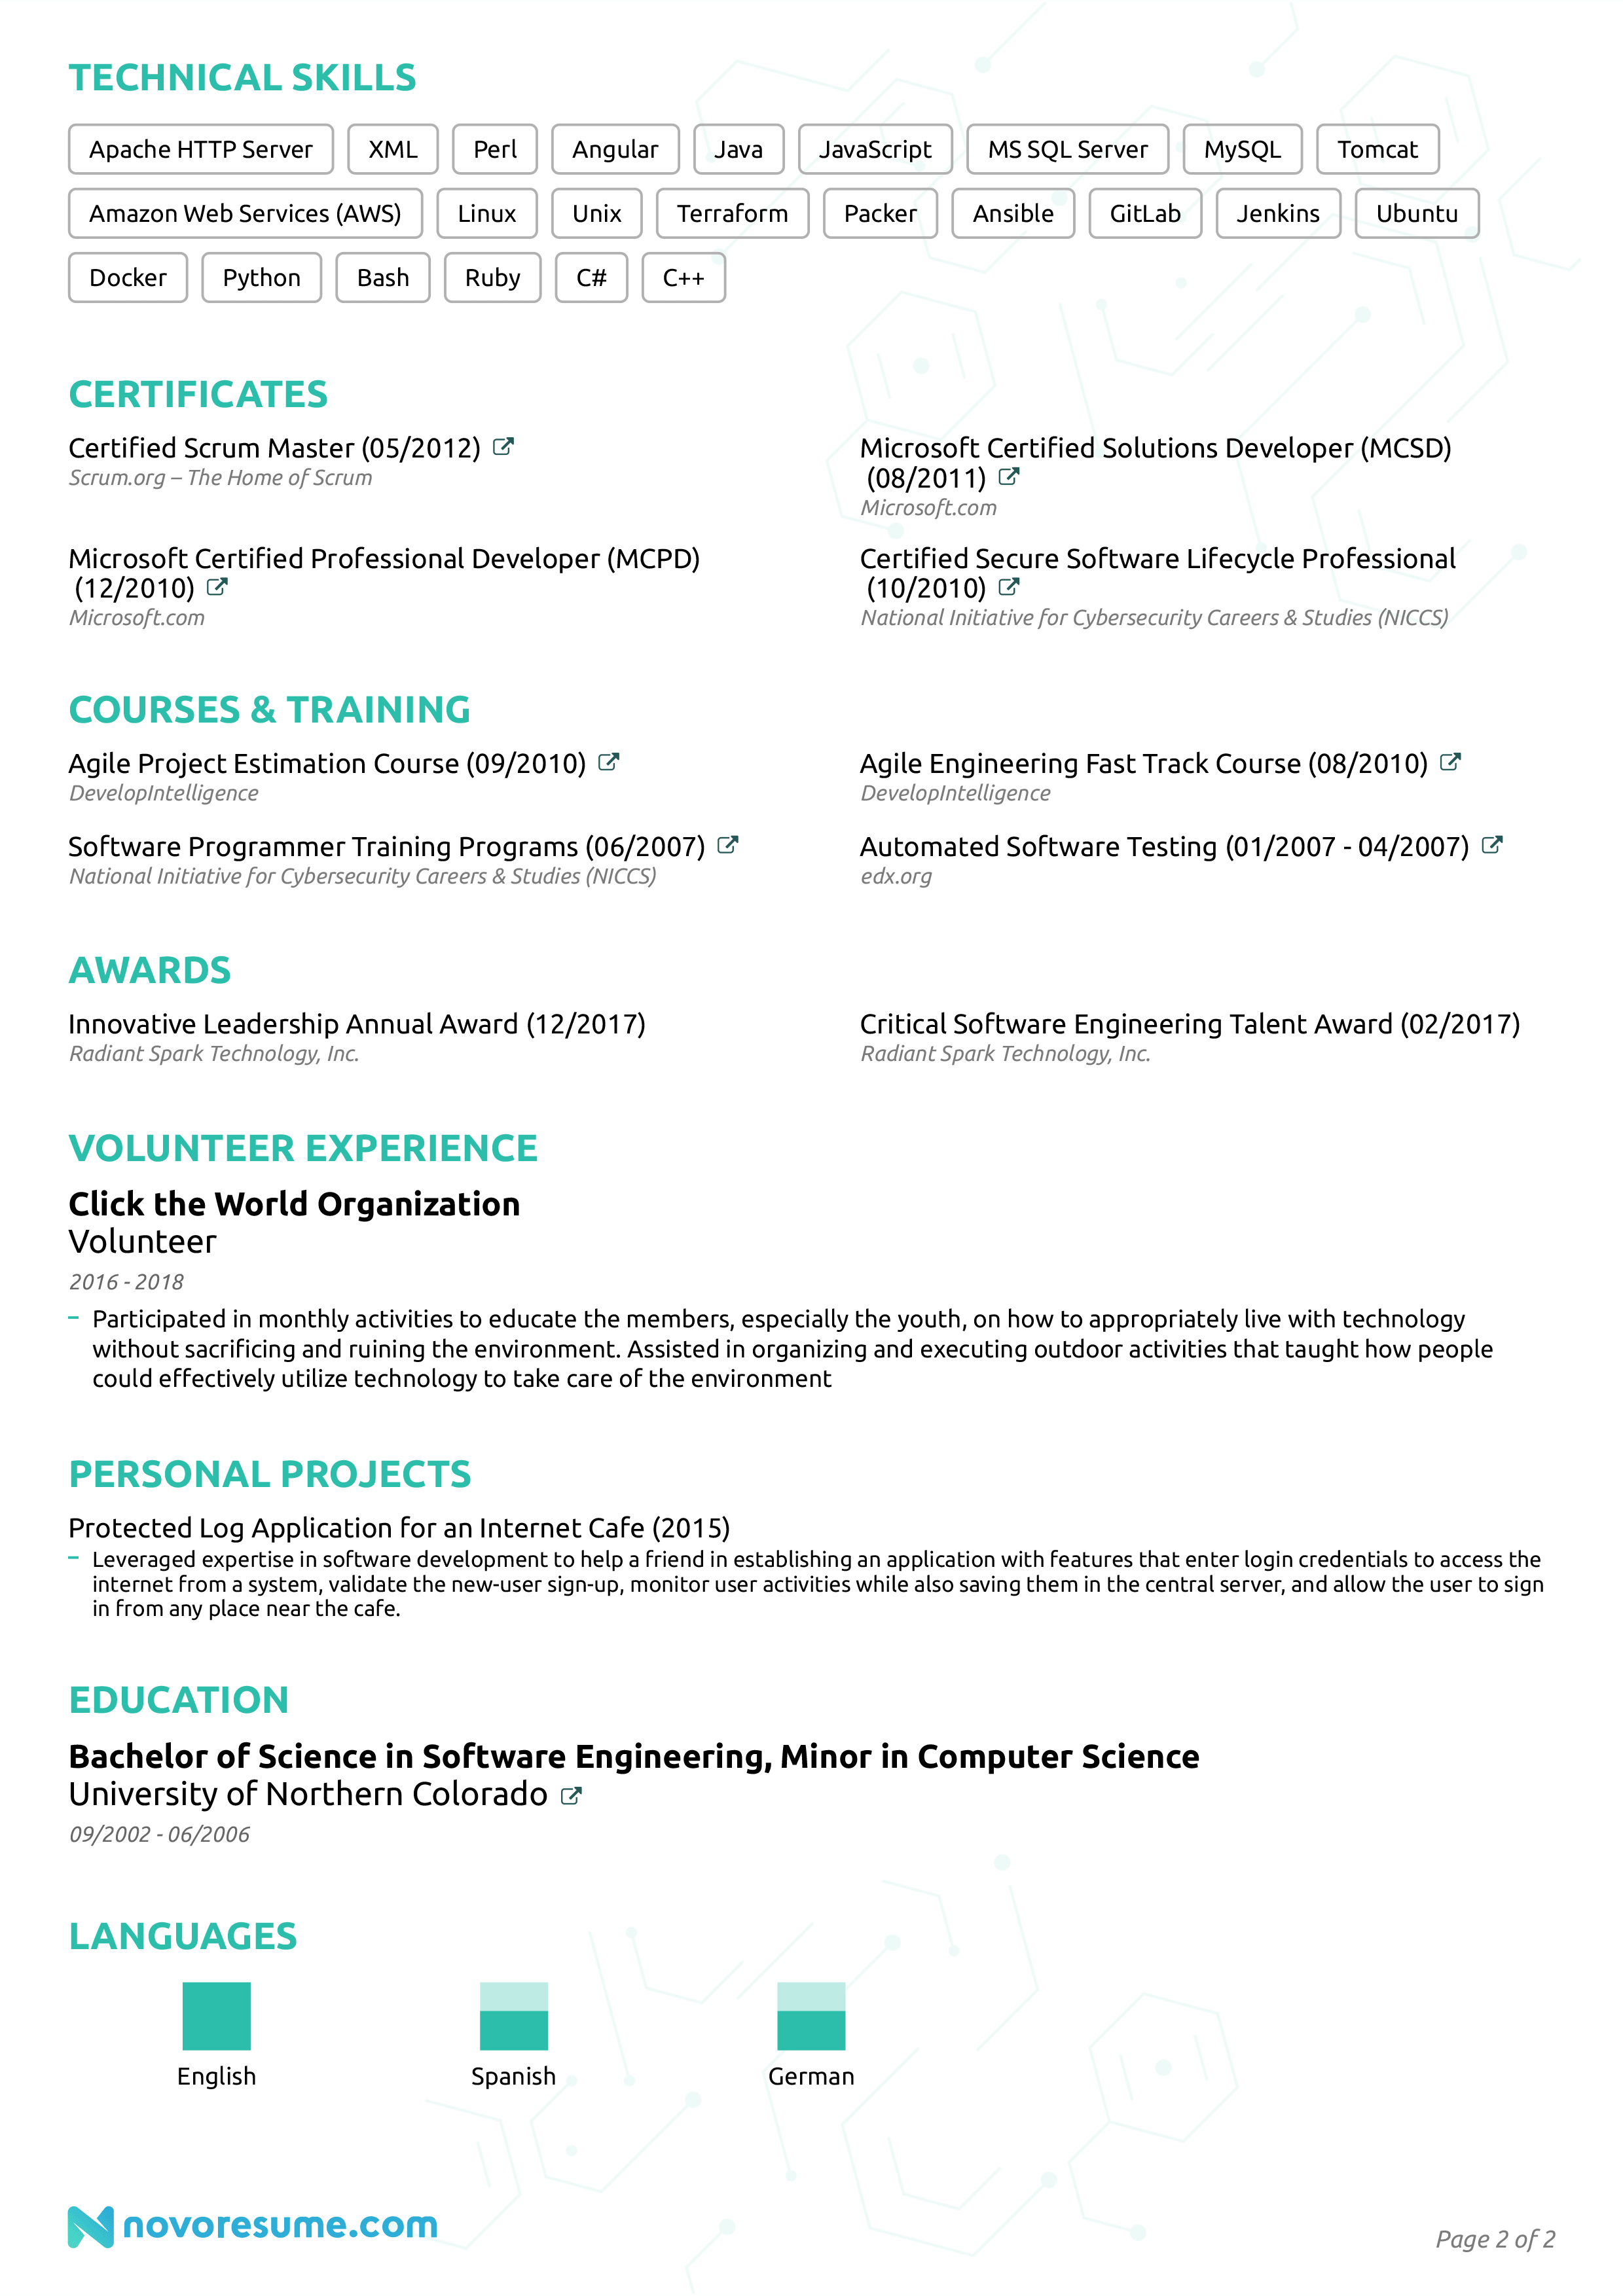 Software Engineer Resume 2021 Example How To Guide